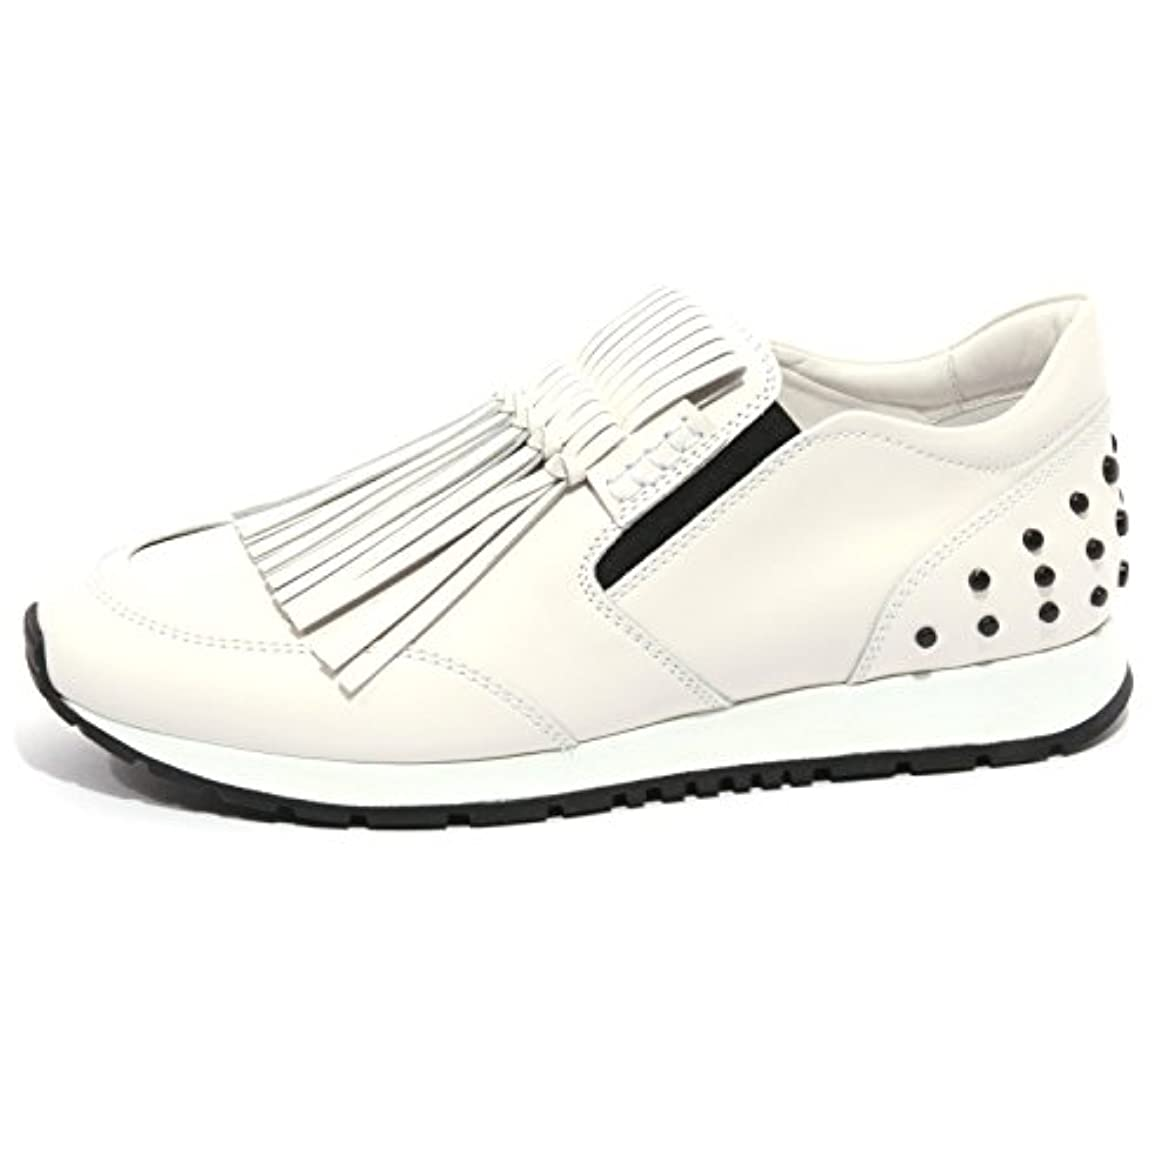 Tod's B1269 Sneaker Donna Scarpa Sportiva Frangia Bianco Shoes Women